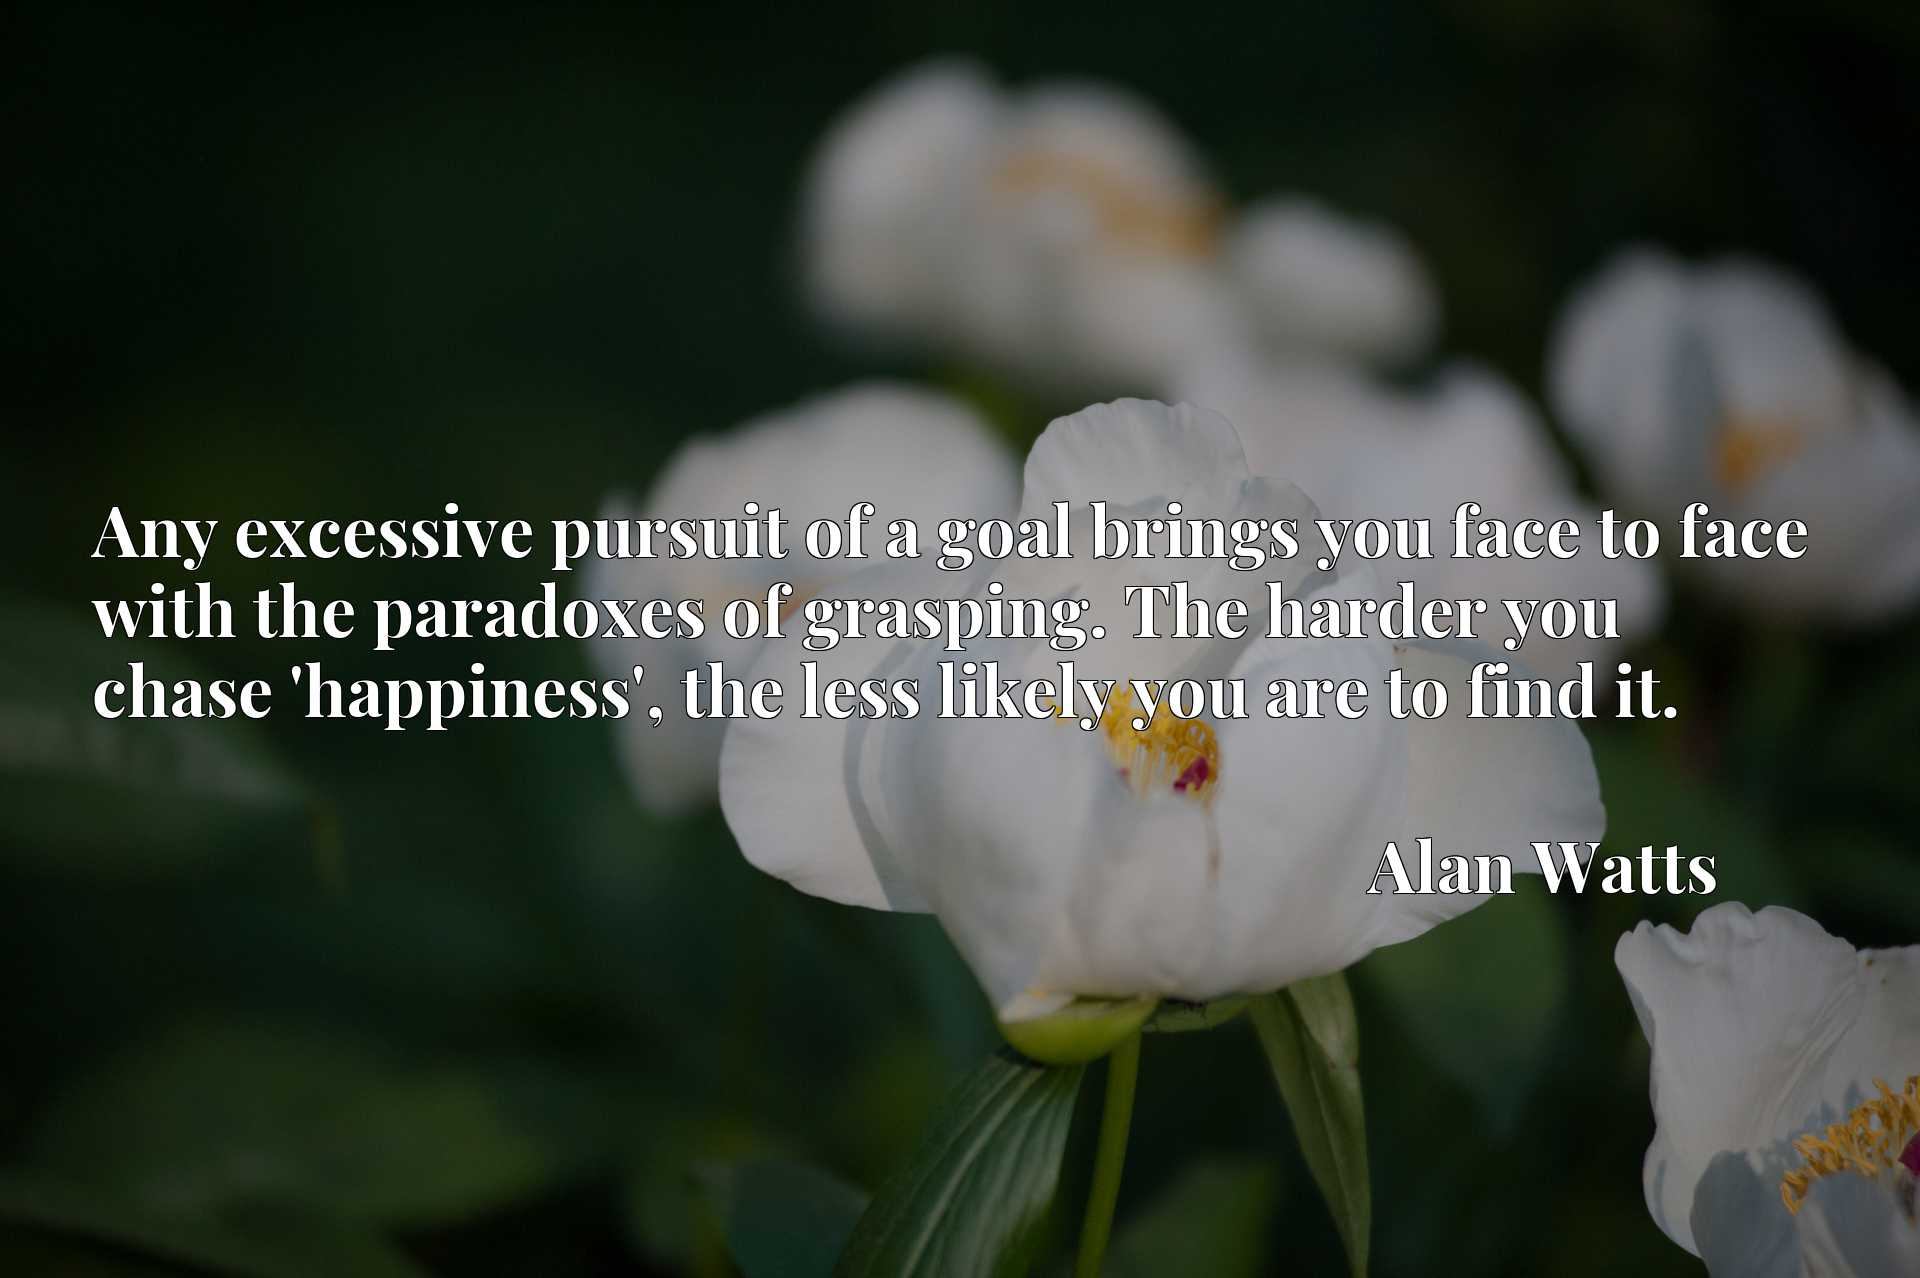 Quote Picture :Any excessive pursuit of a goal brings you face to face with the paradoxes of grasping. The harder you chase 'happiness', the less likely you are to find it.